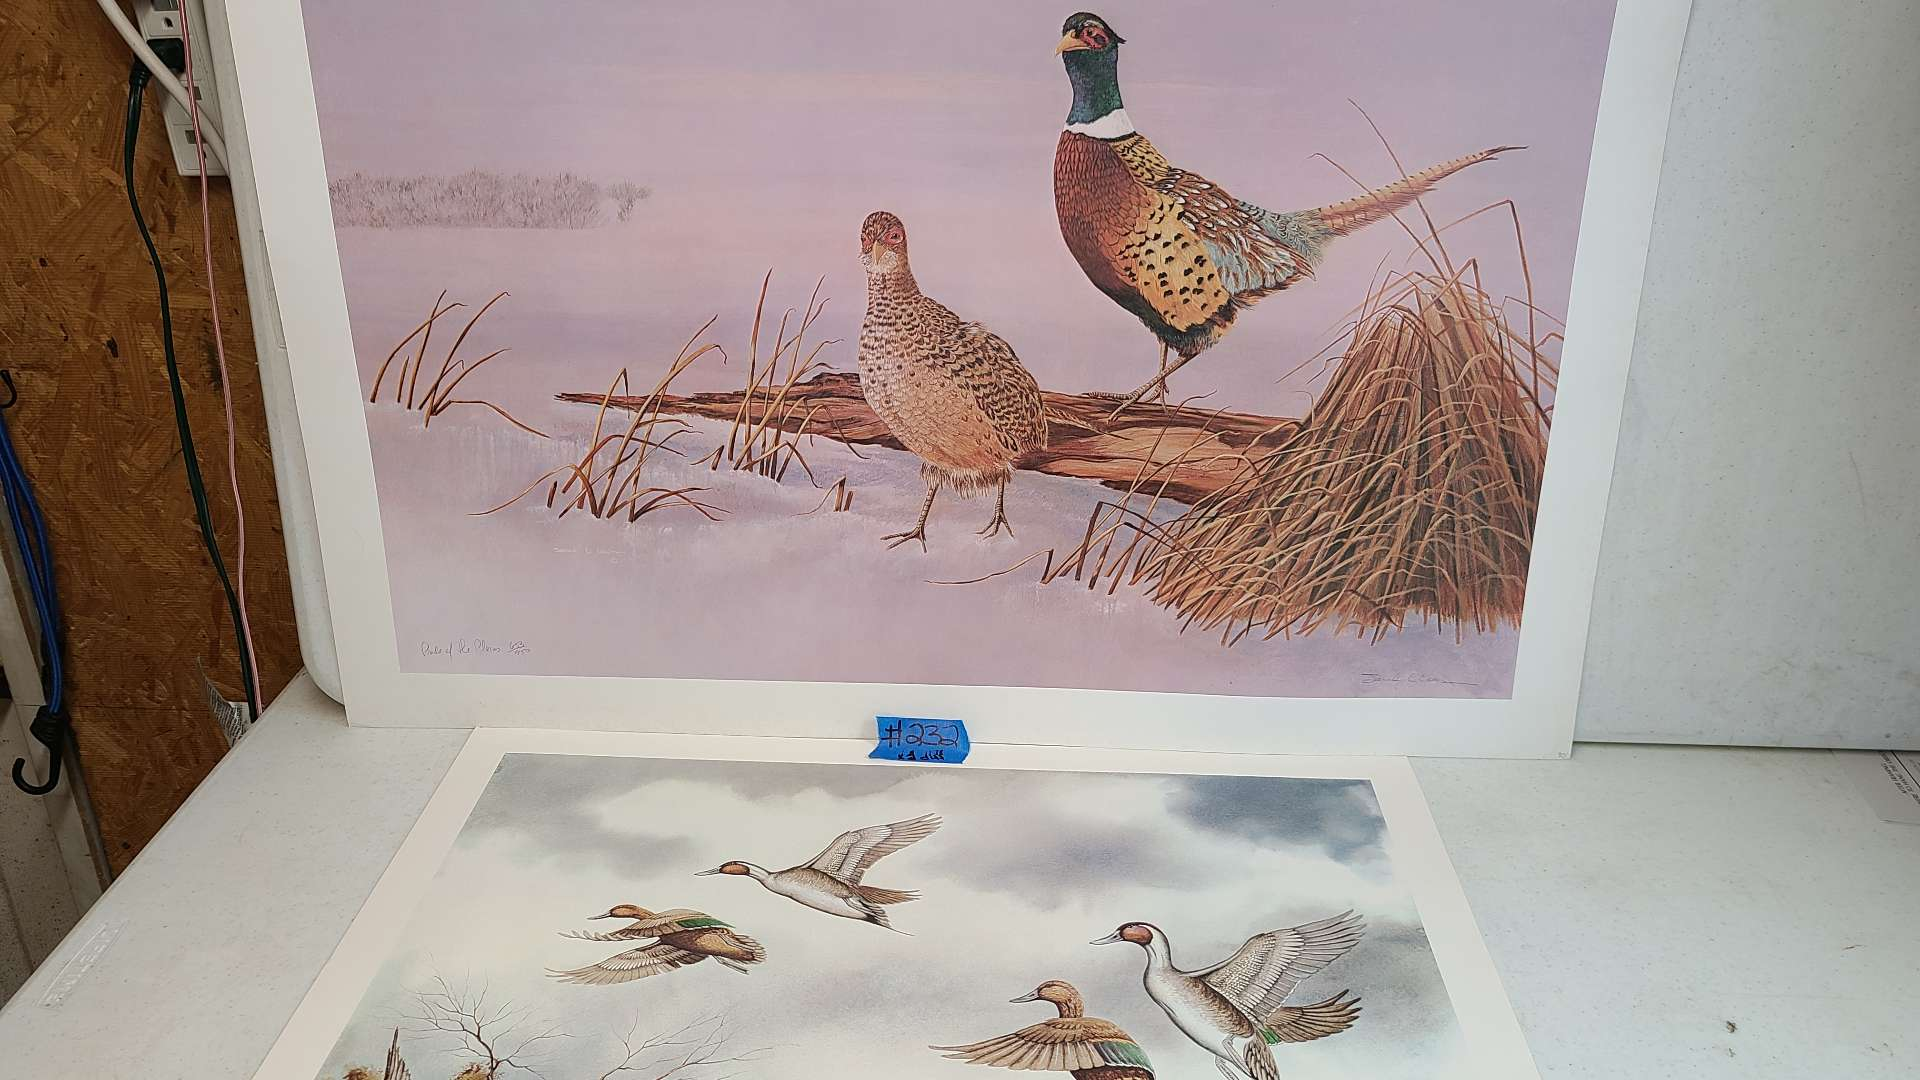 Lot # 232 Lot of 2 Bird Themed Lithographs-Signed & Numbered